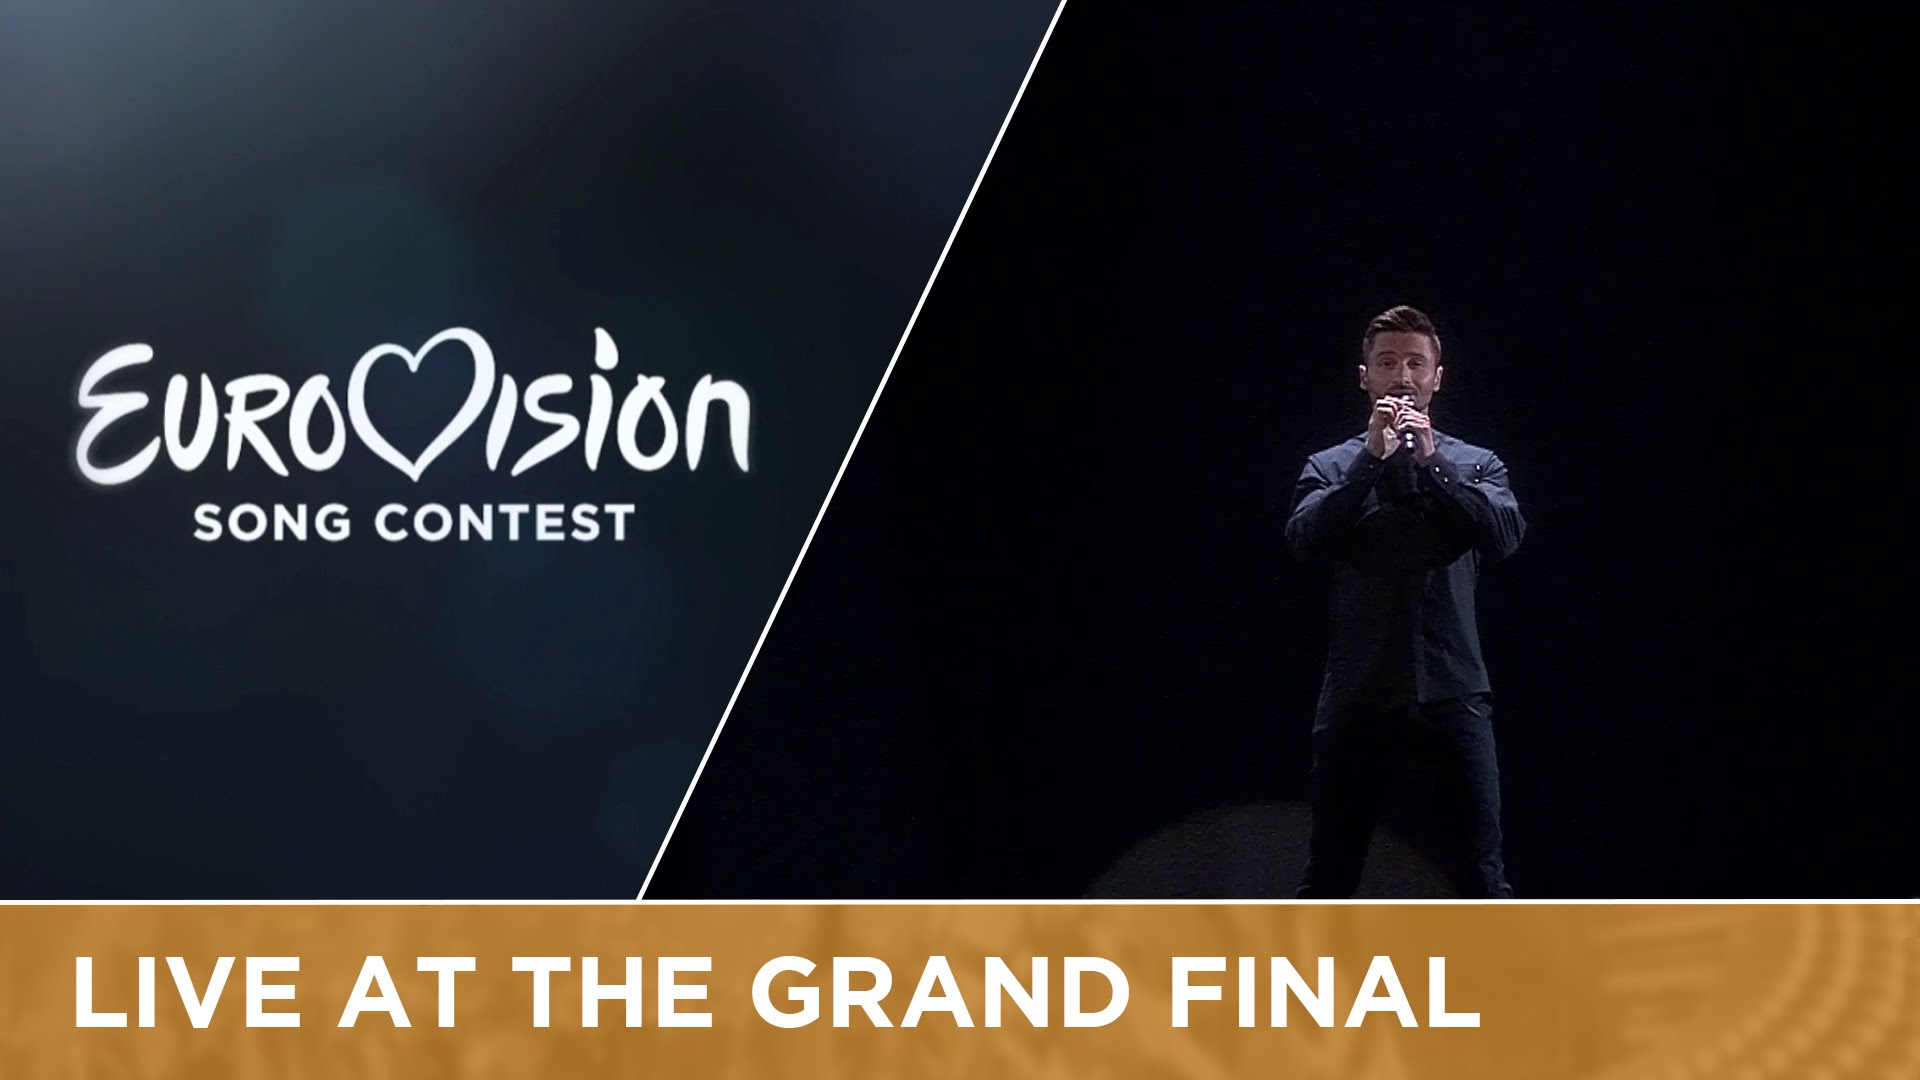 LIVE - Sergey Lazarev - You Are The Only One (Russia) at the Grand Final настоящий победитель Евровидение